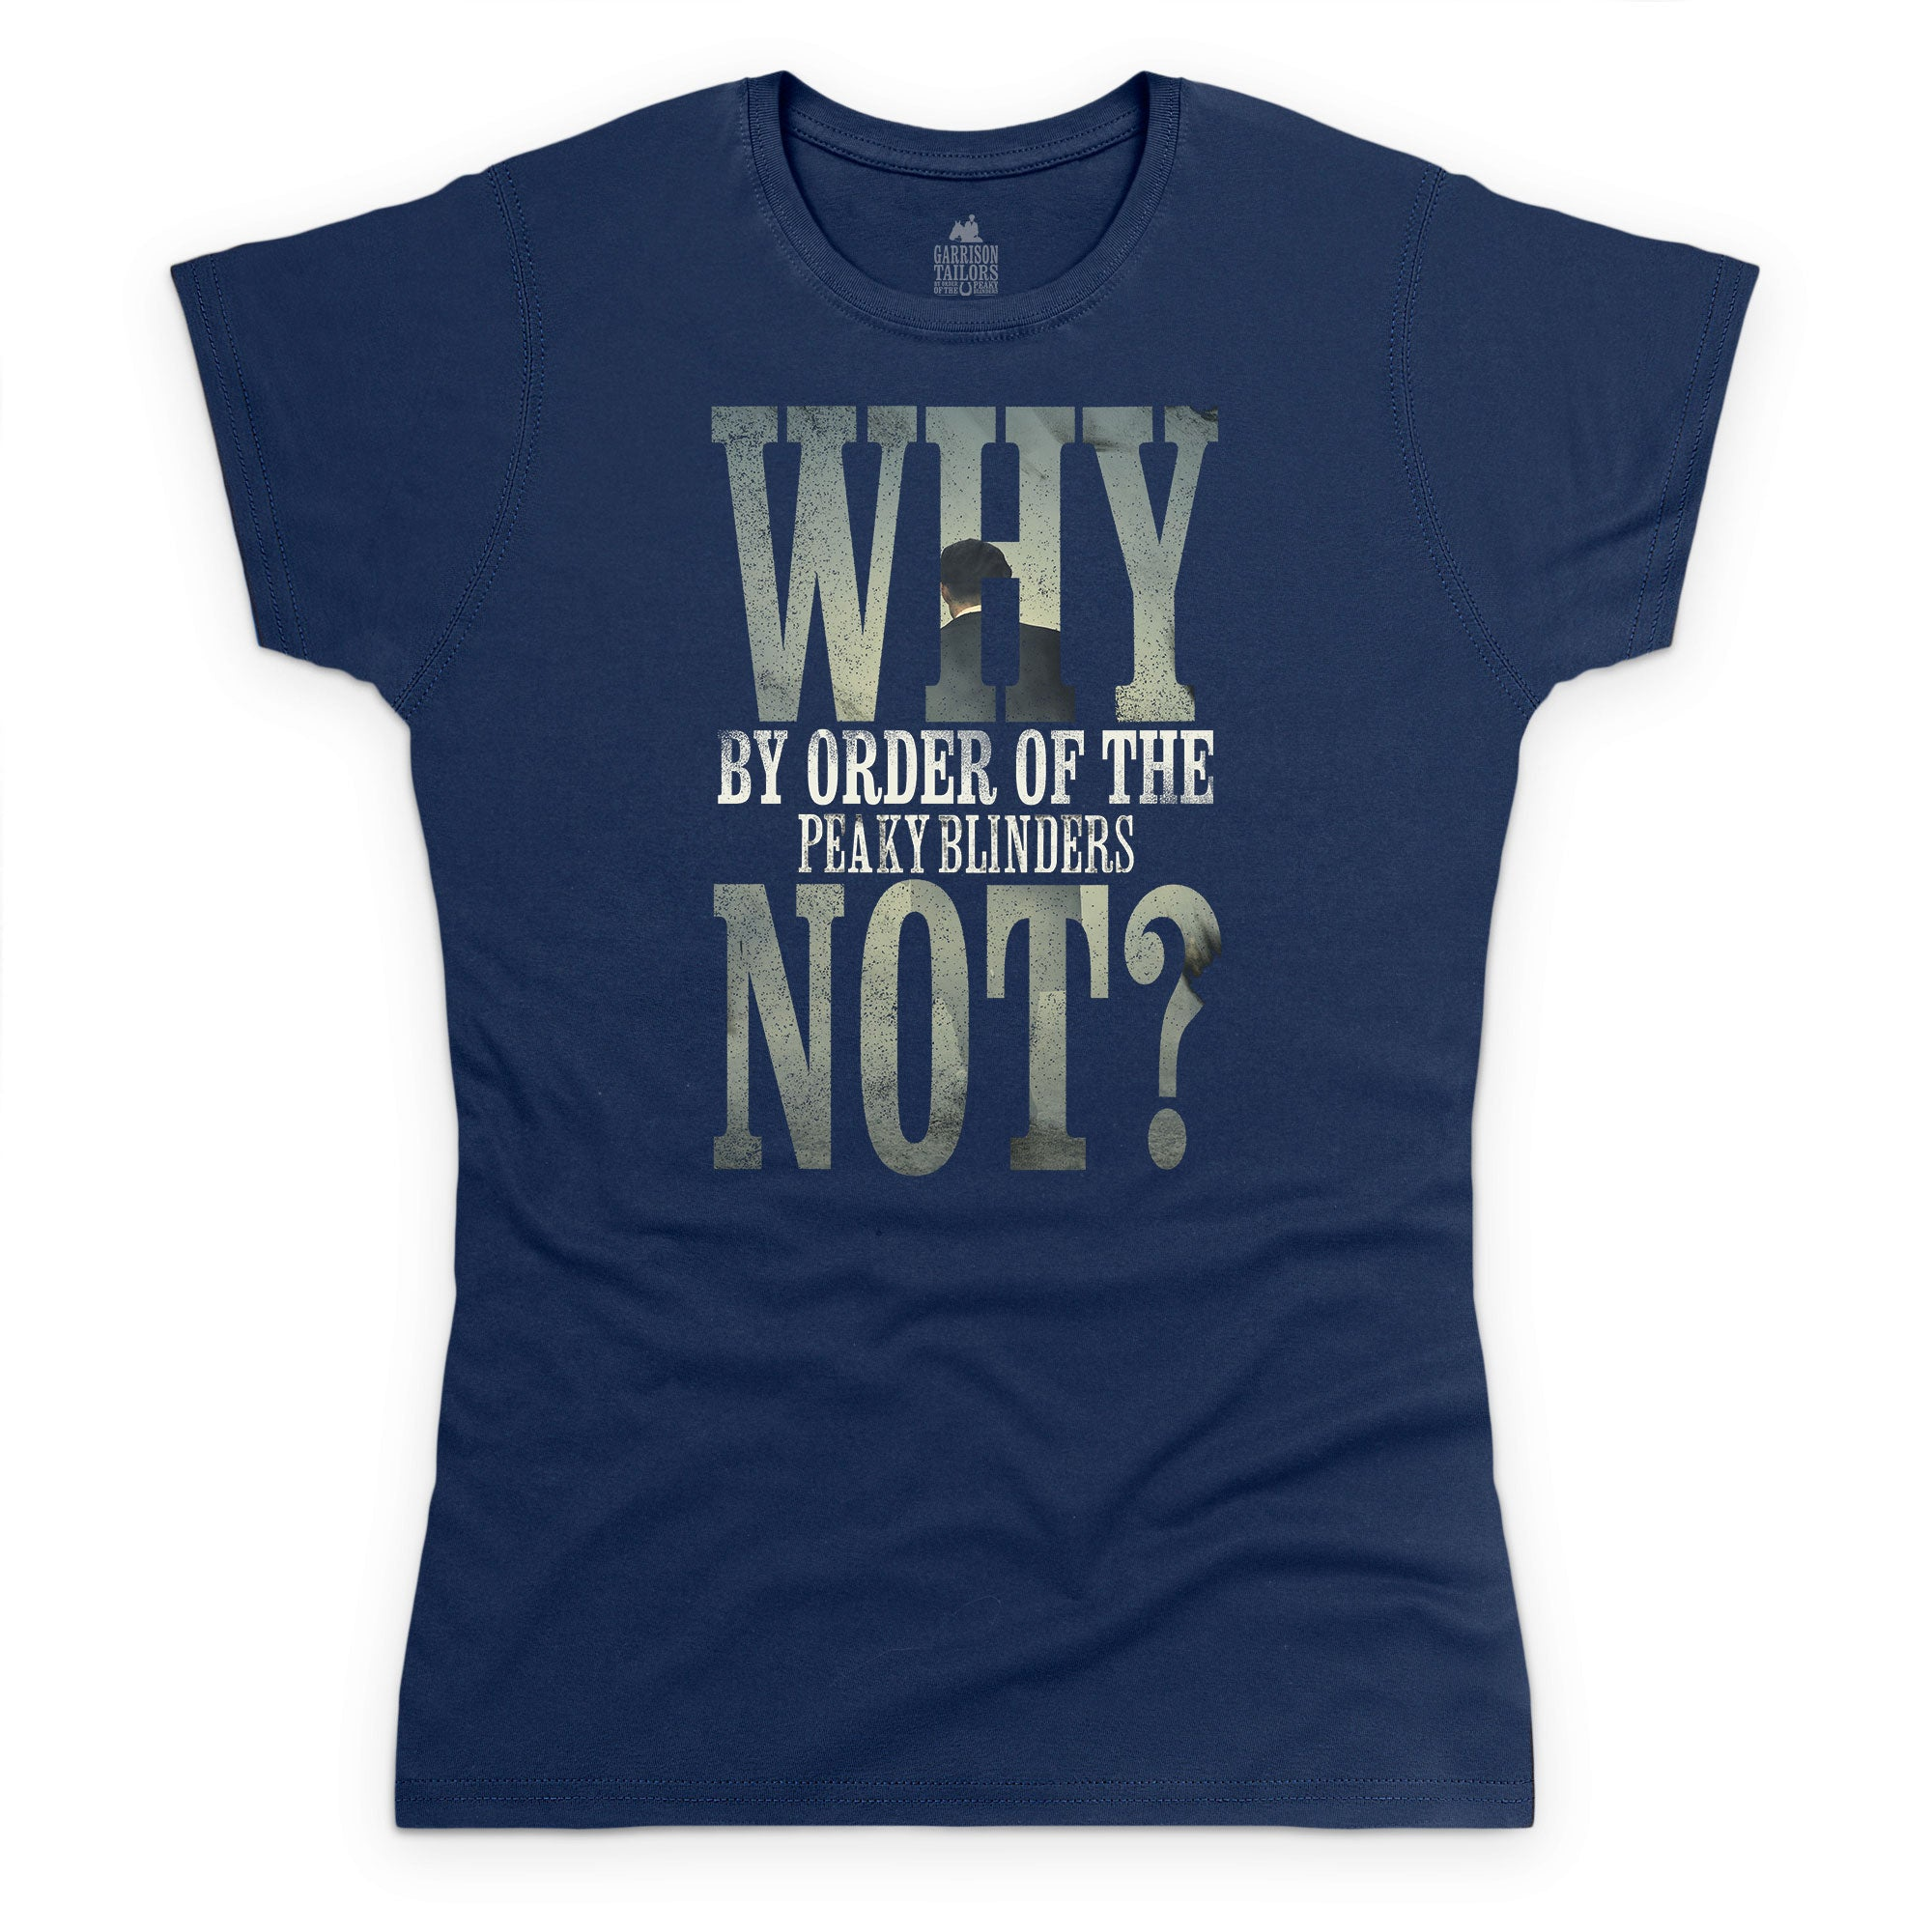 Style: Female, Color: Navy Blue.